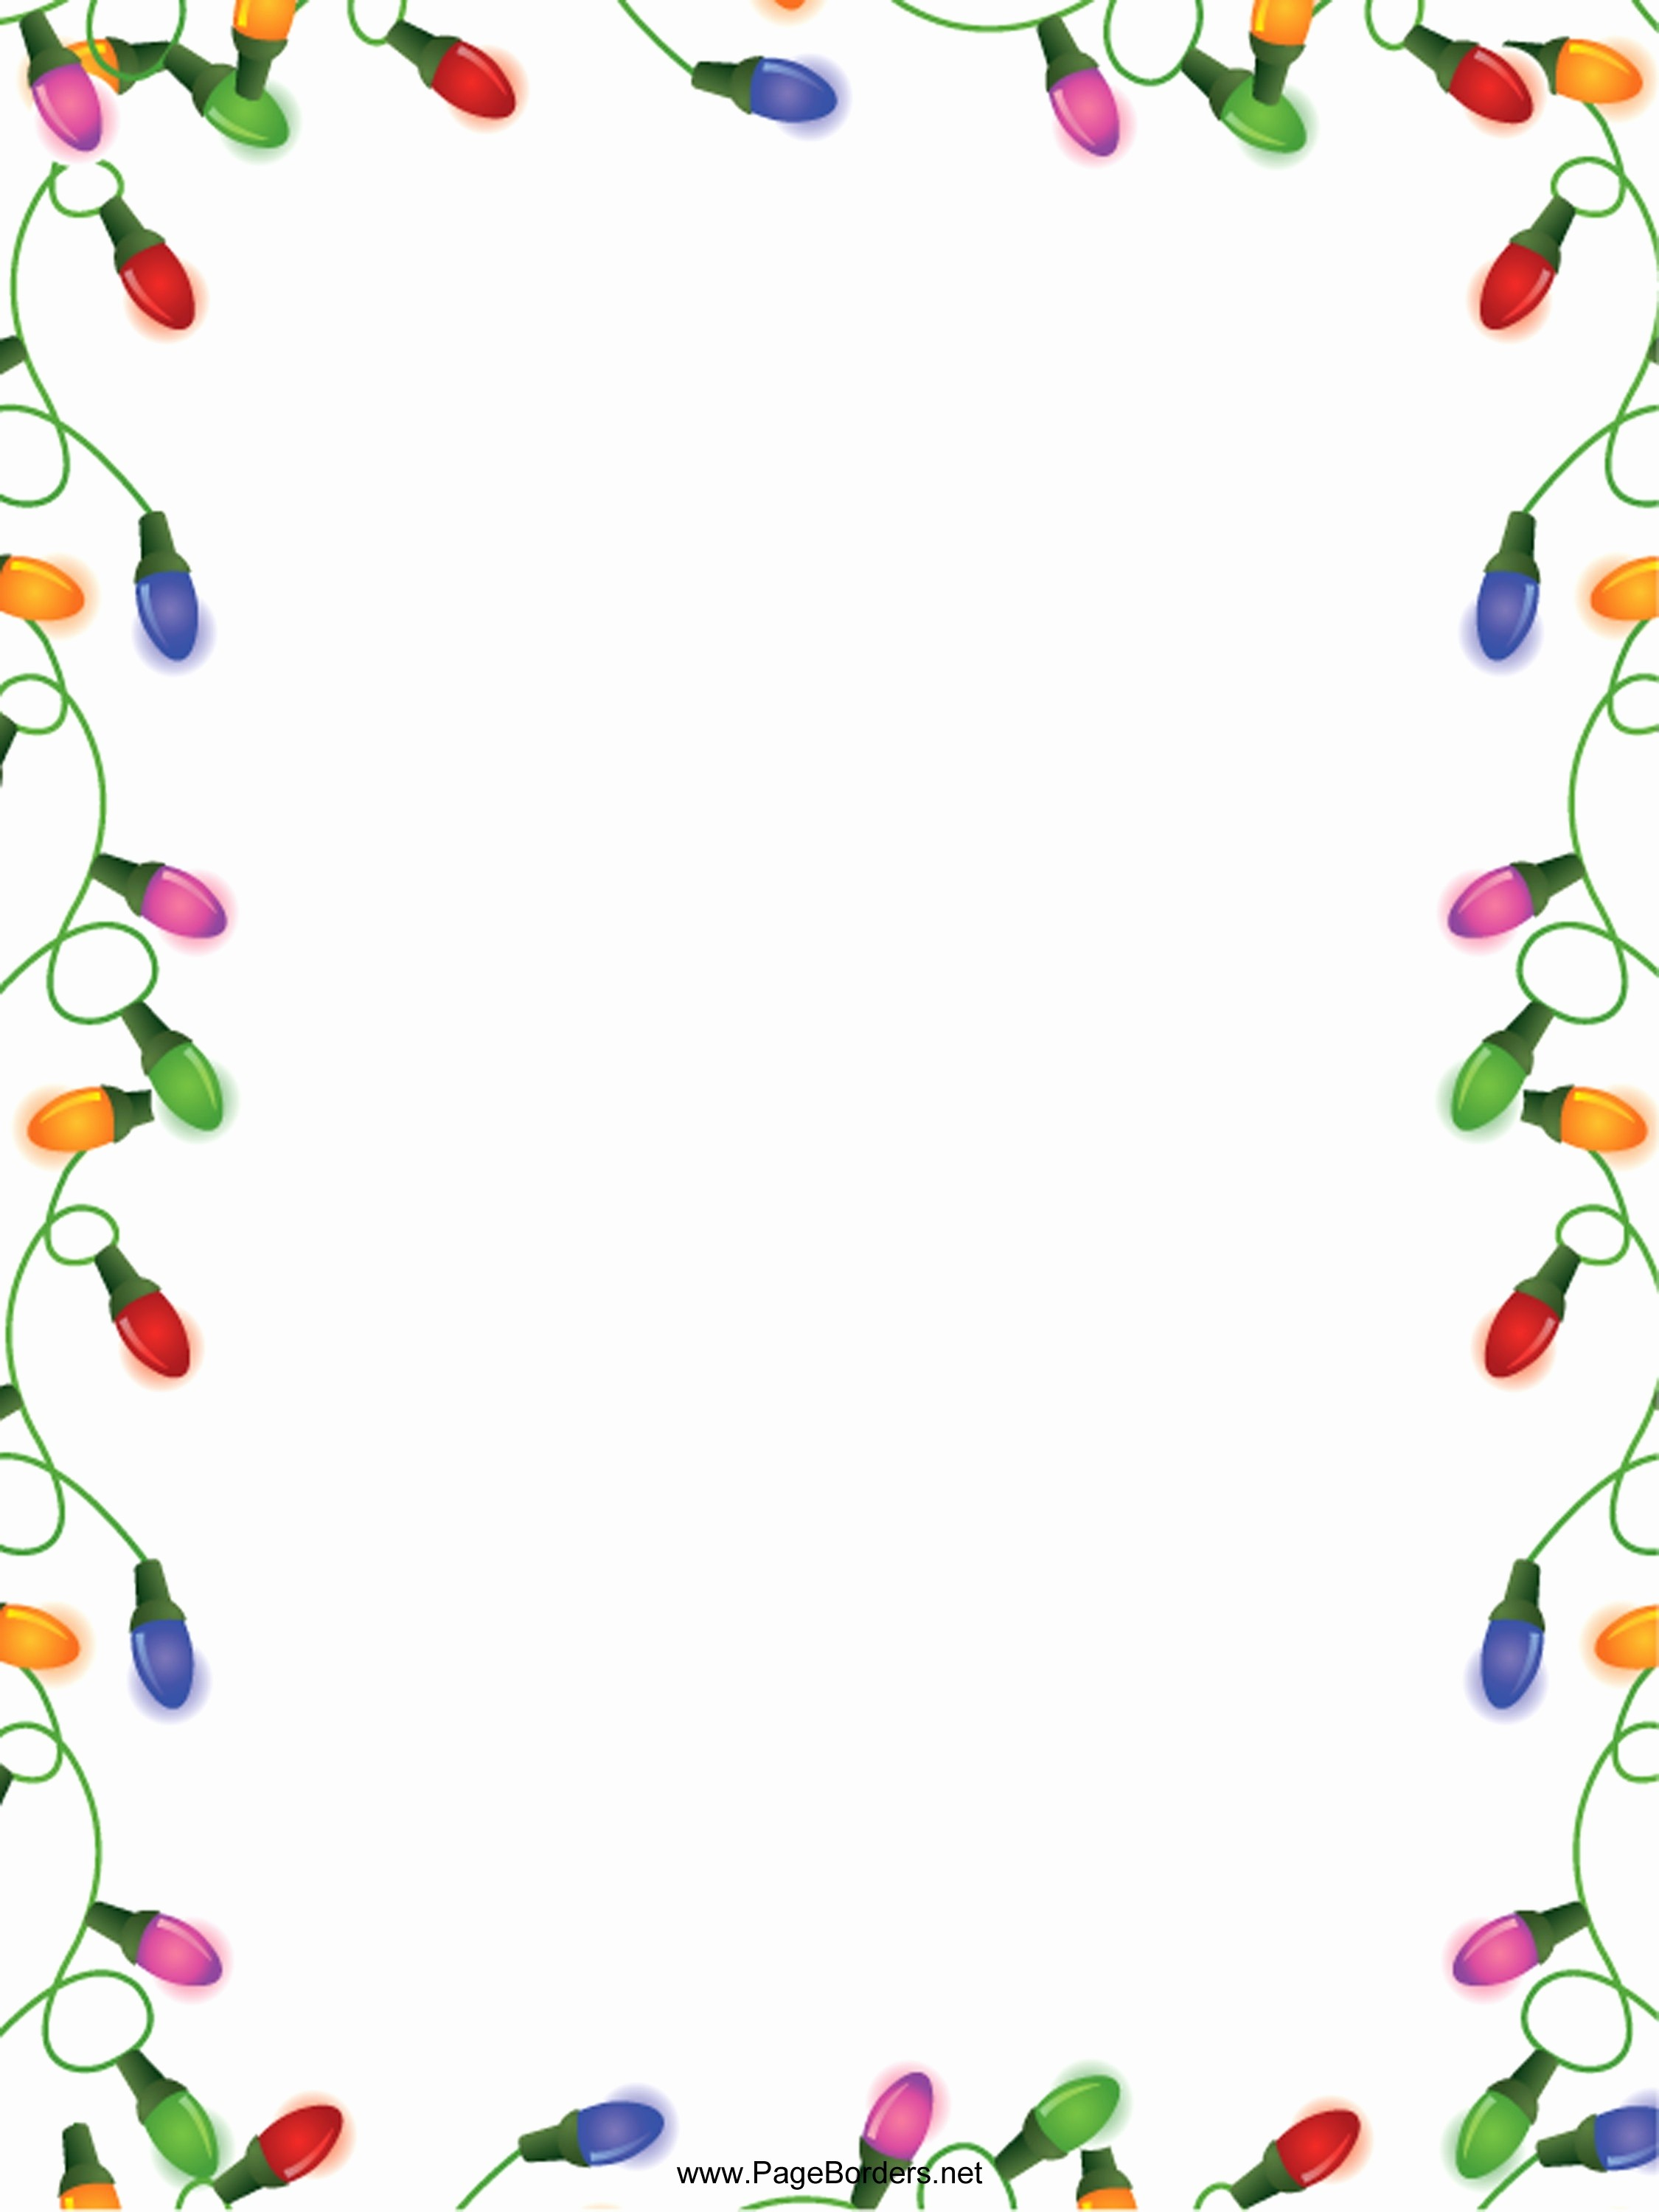 Free Microsoft Word Christmas Template Elegant Free Holiday Border Templates Microsoft Word